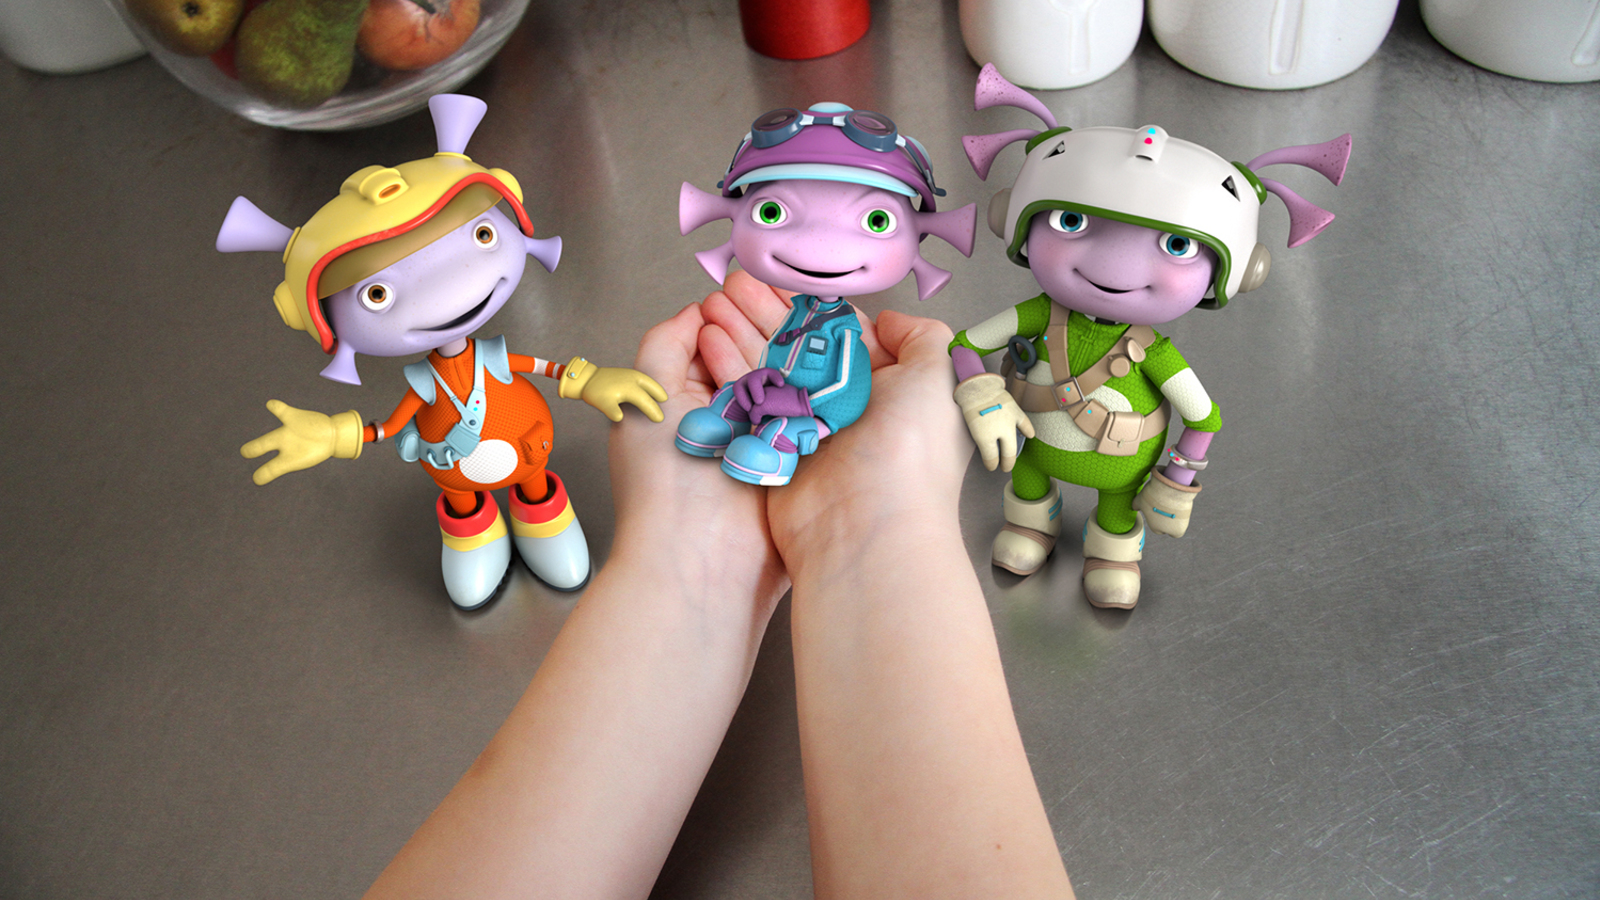 Characters from the Floogals composited into a kitchen scene